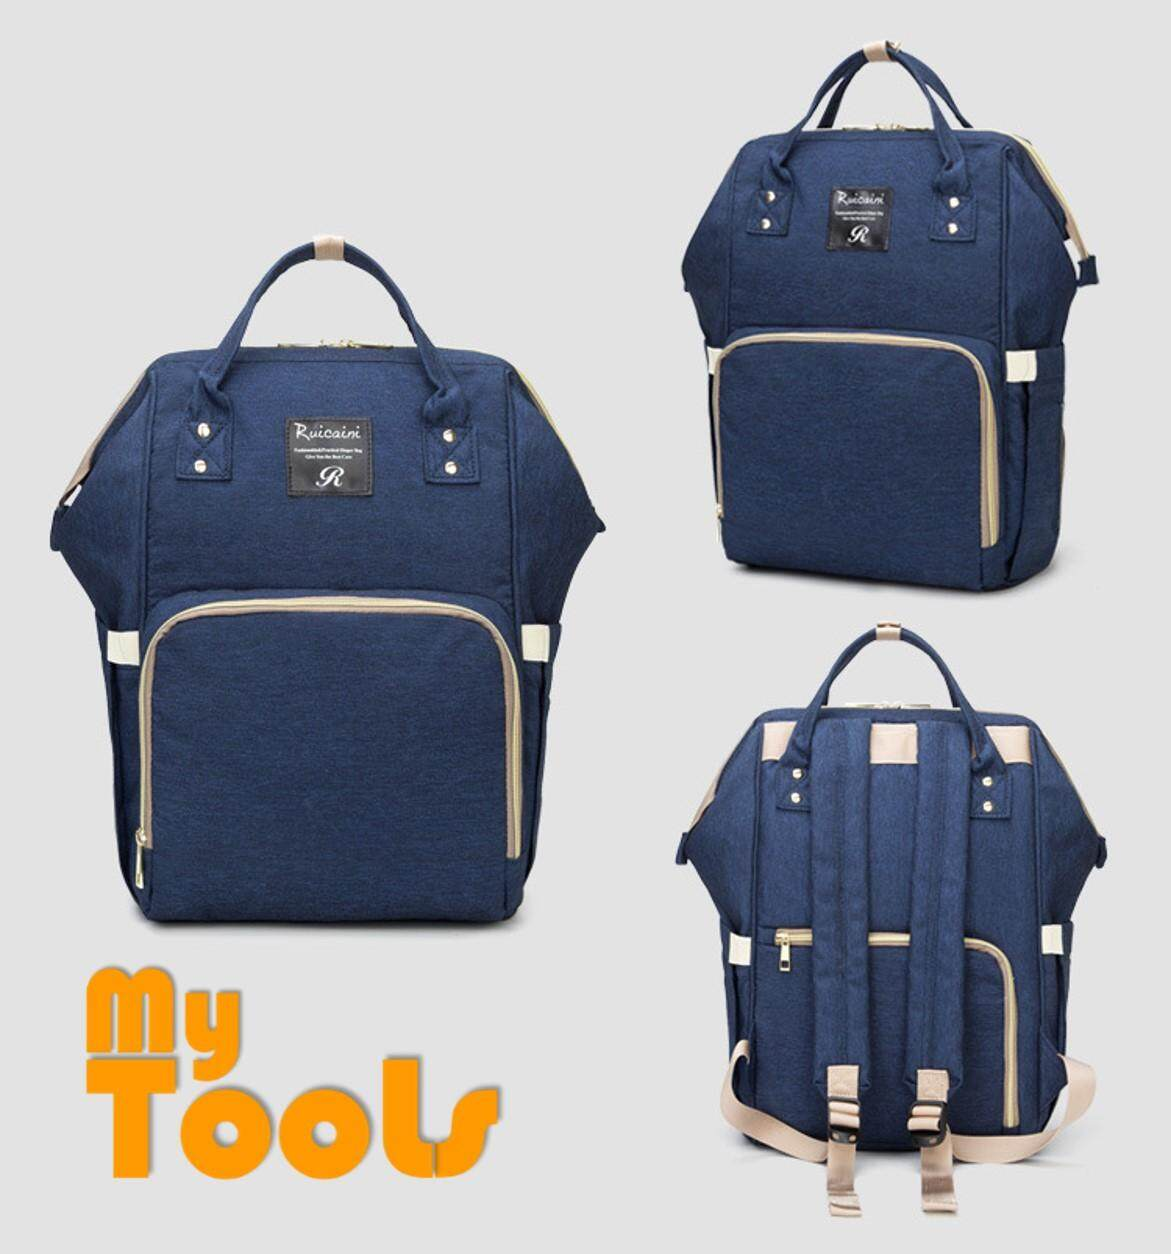 Diaper Bags For The Best Price In Malaysia Tas Wanita Hand Bag Sc2337 Mytools Fashion Mummy Maternity Nappy Large Capacity Baby Mother Travel Backpack Nursing